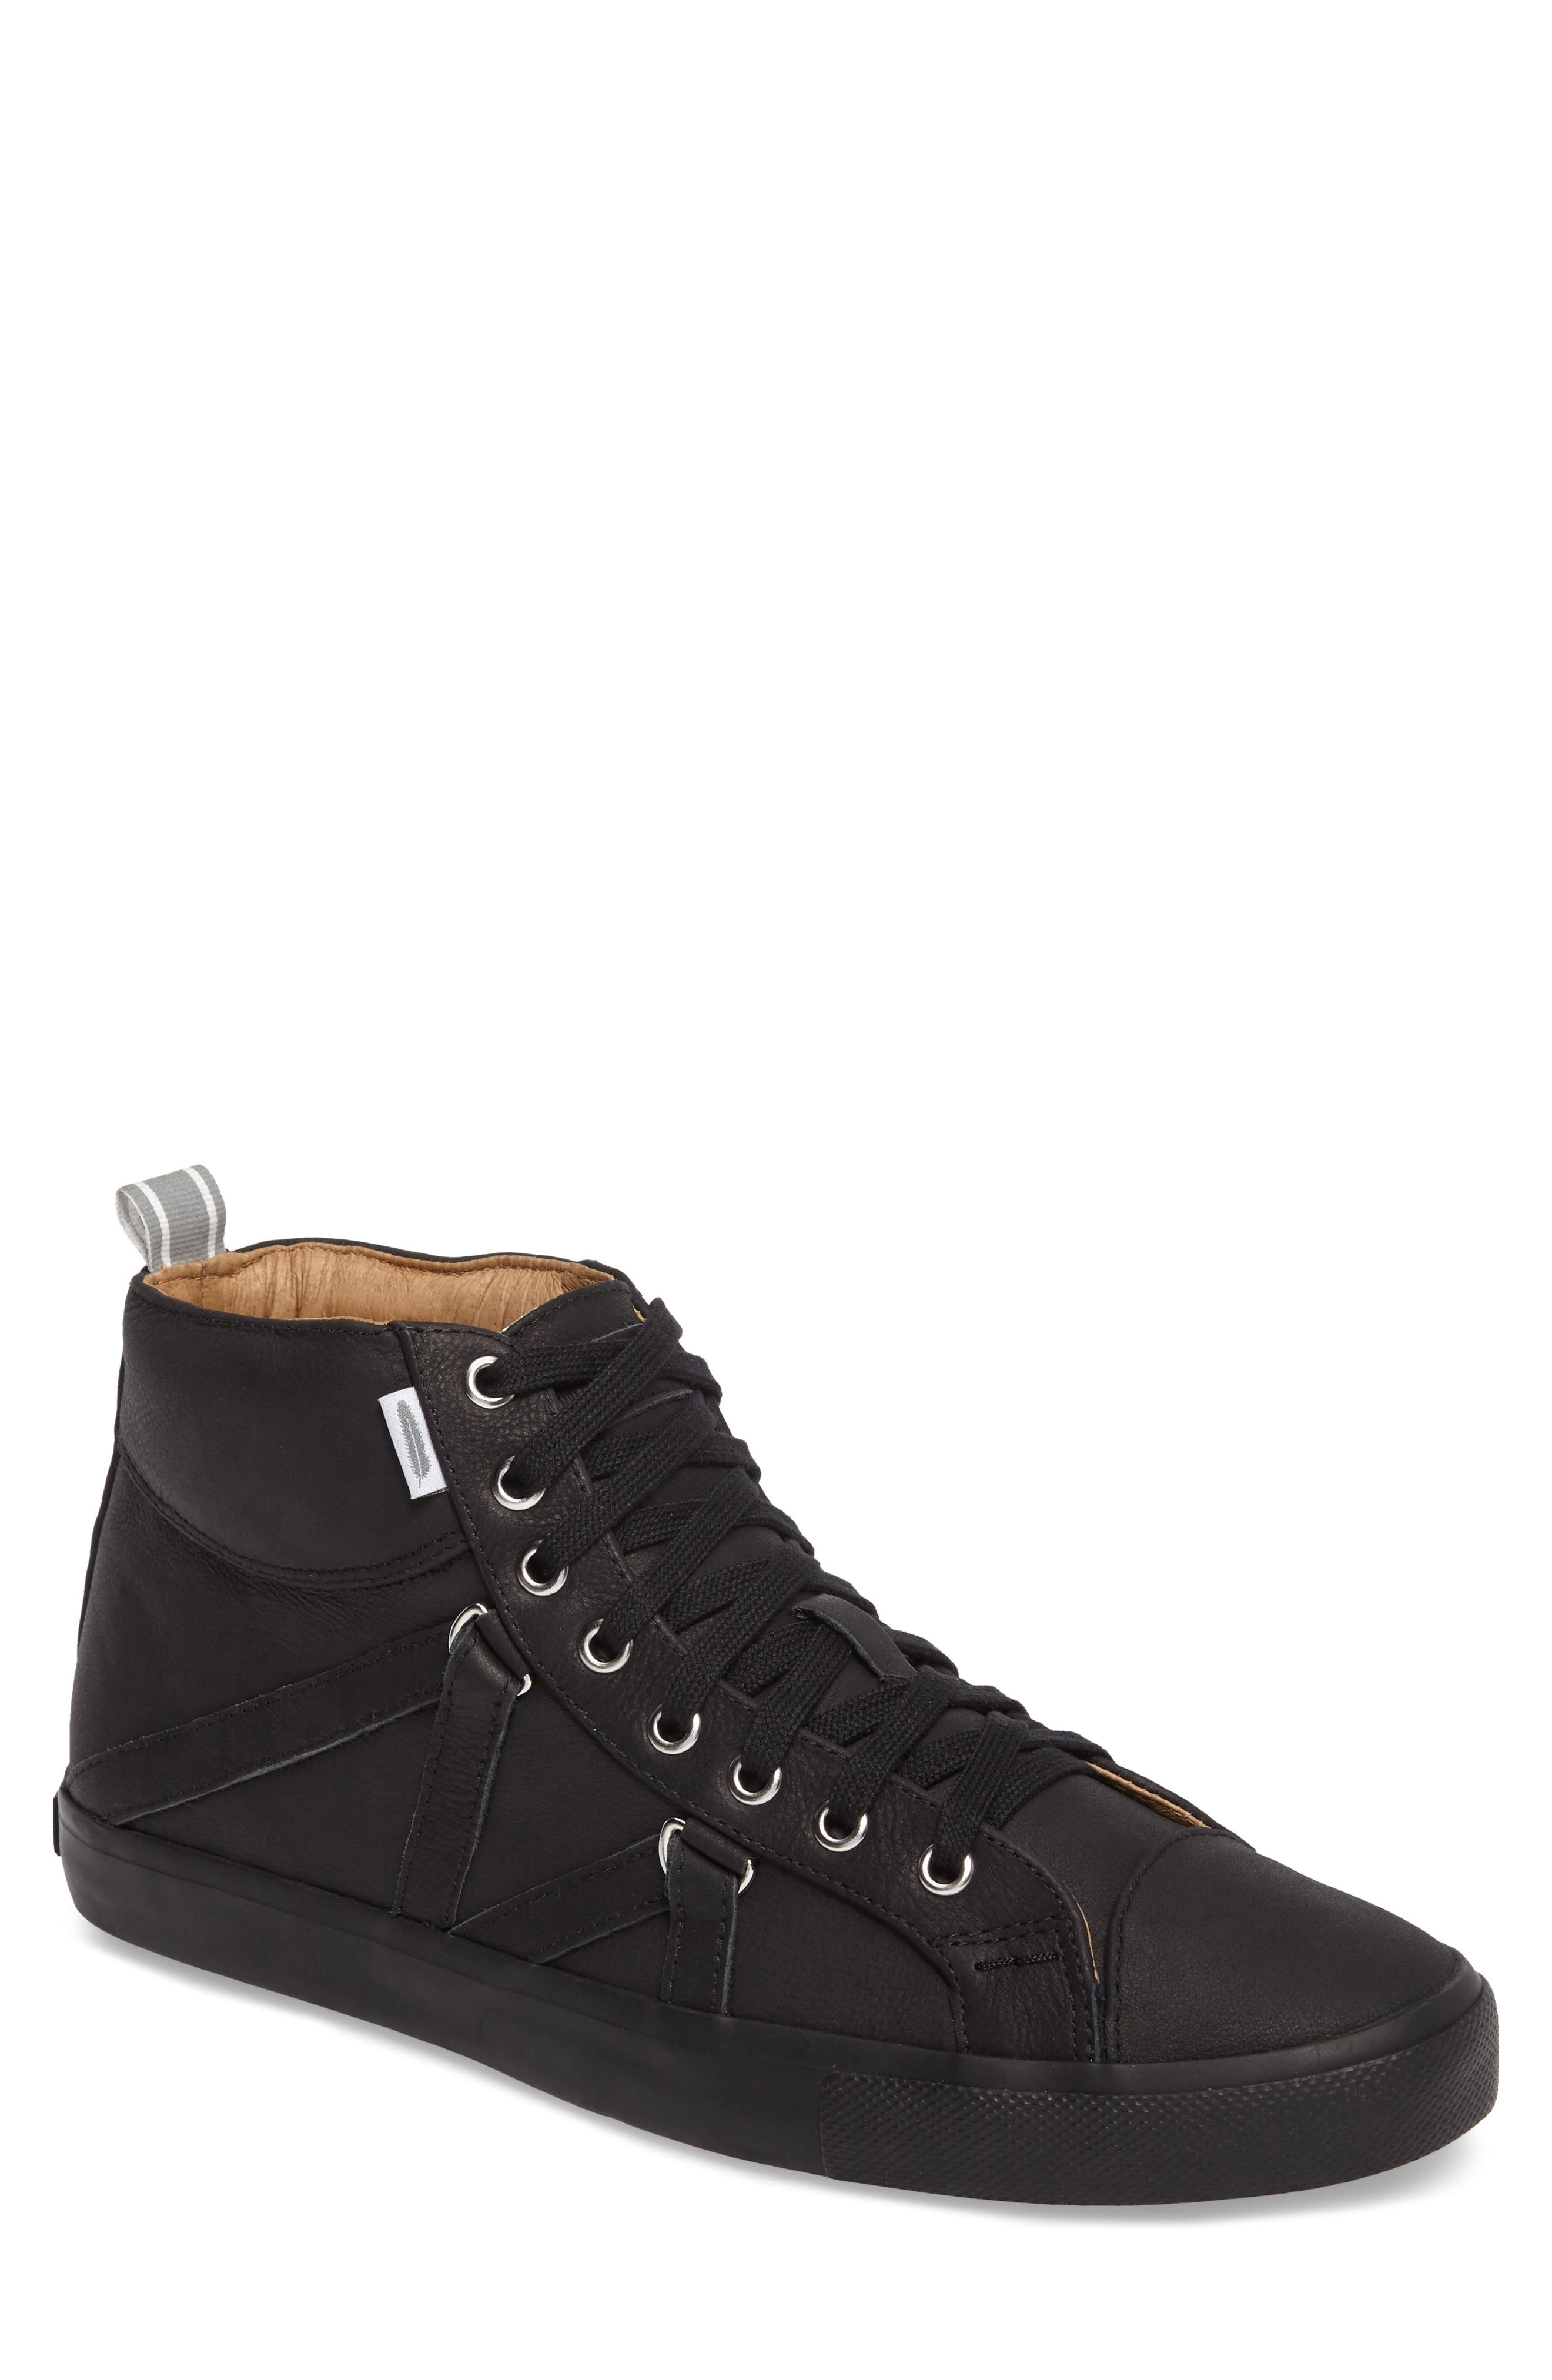 Signature High Top Sneaker,                             Main thumbnail 1, color,                             NERO LEATHER